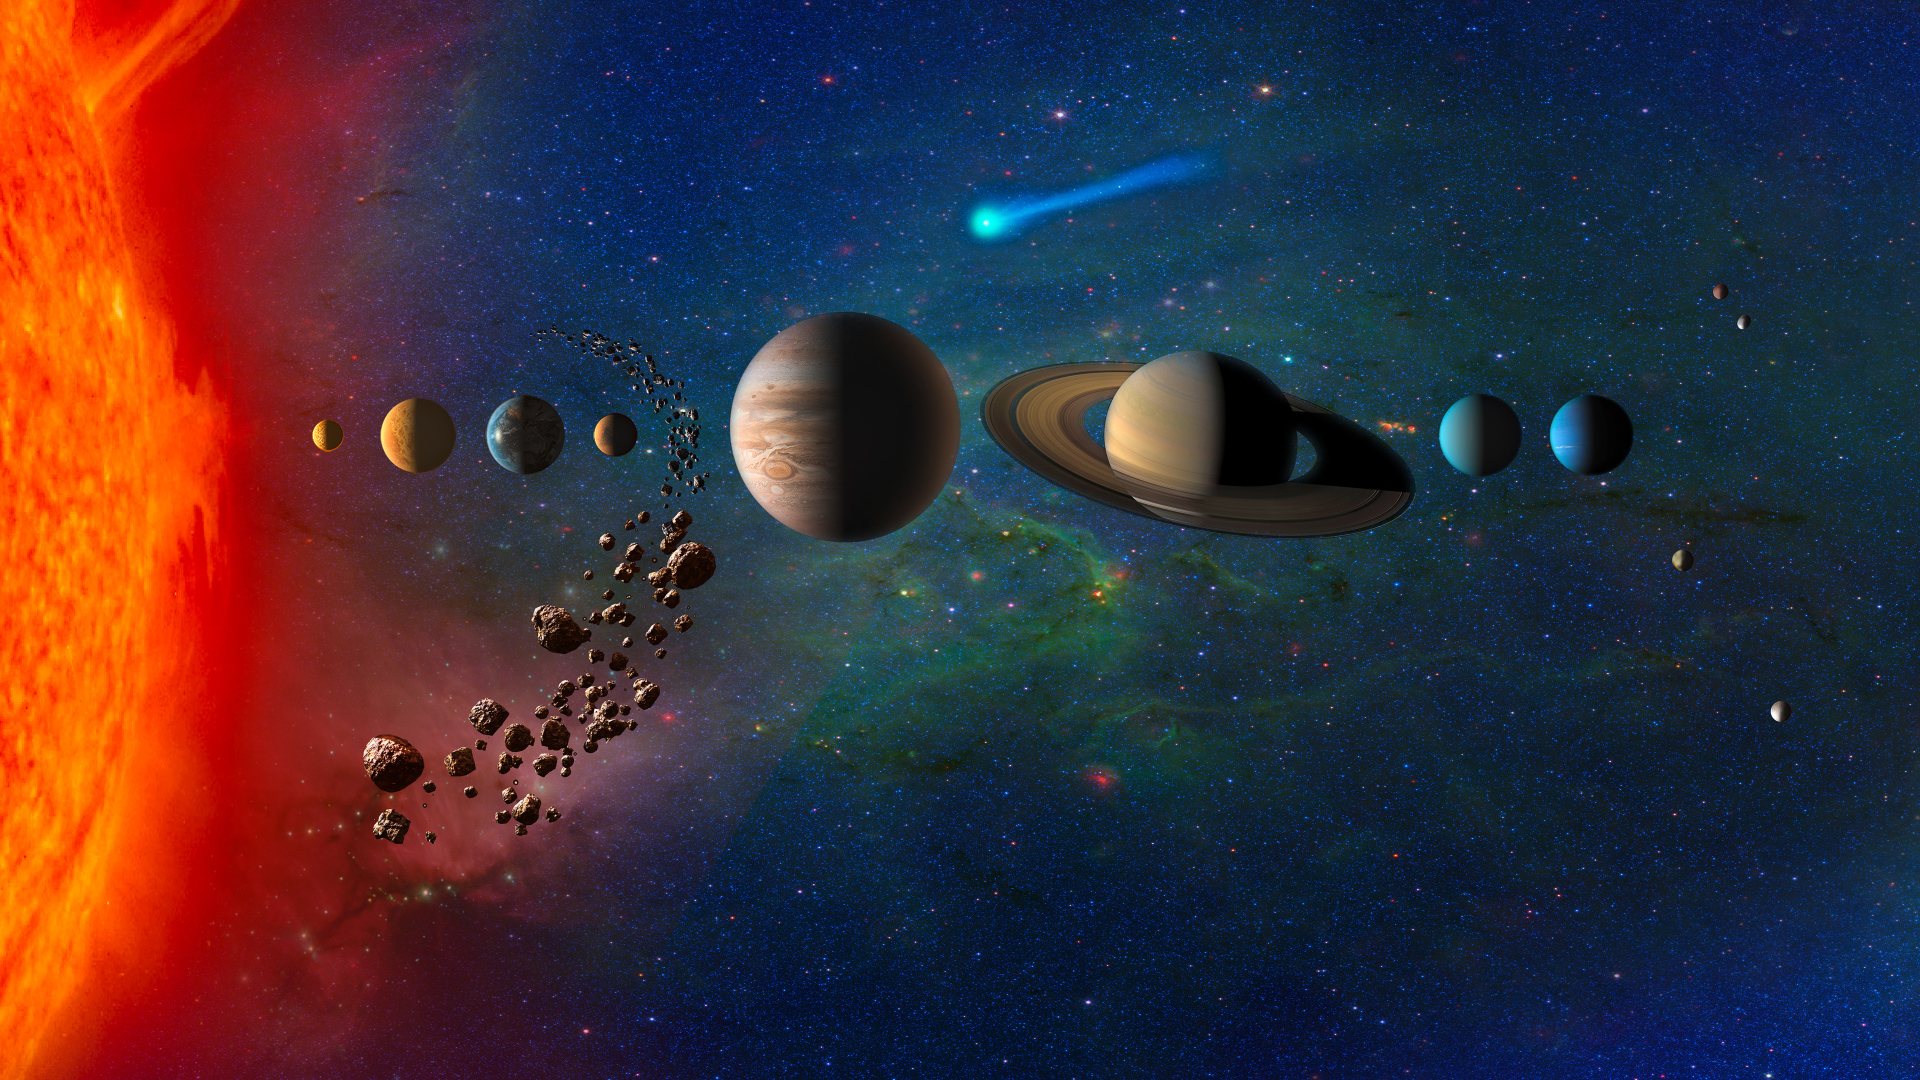 1920x1080 Planets In Solar System Galaxy 1080p Laptop Full